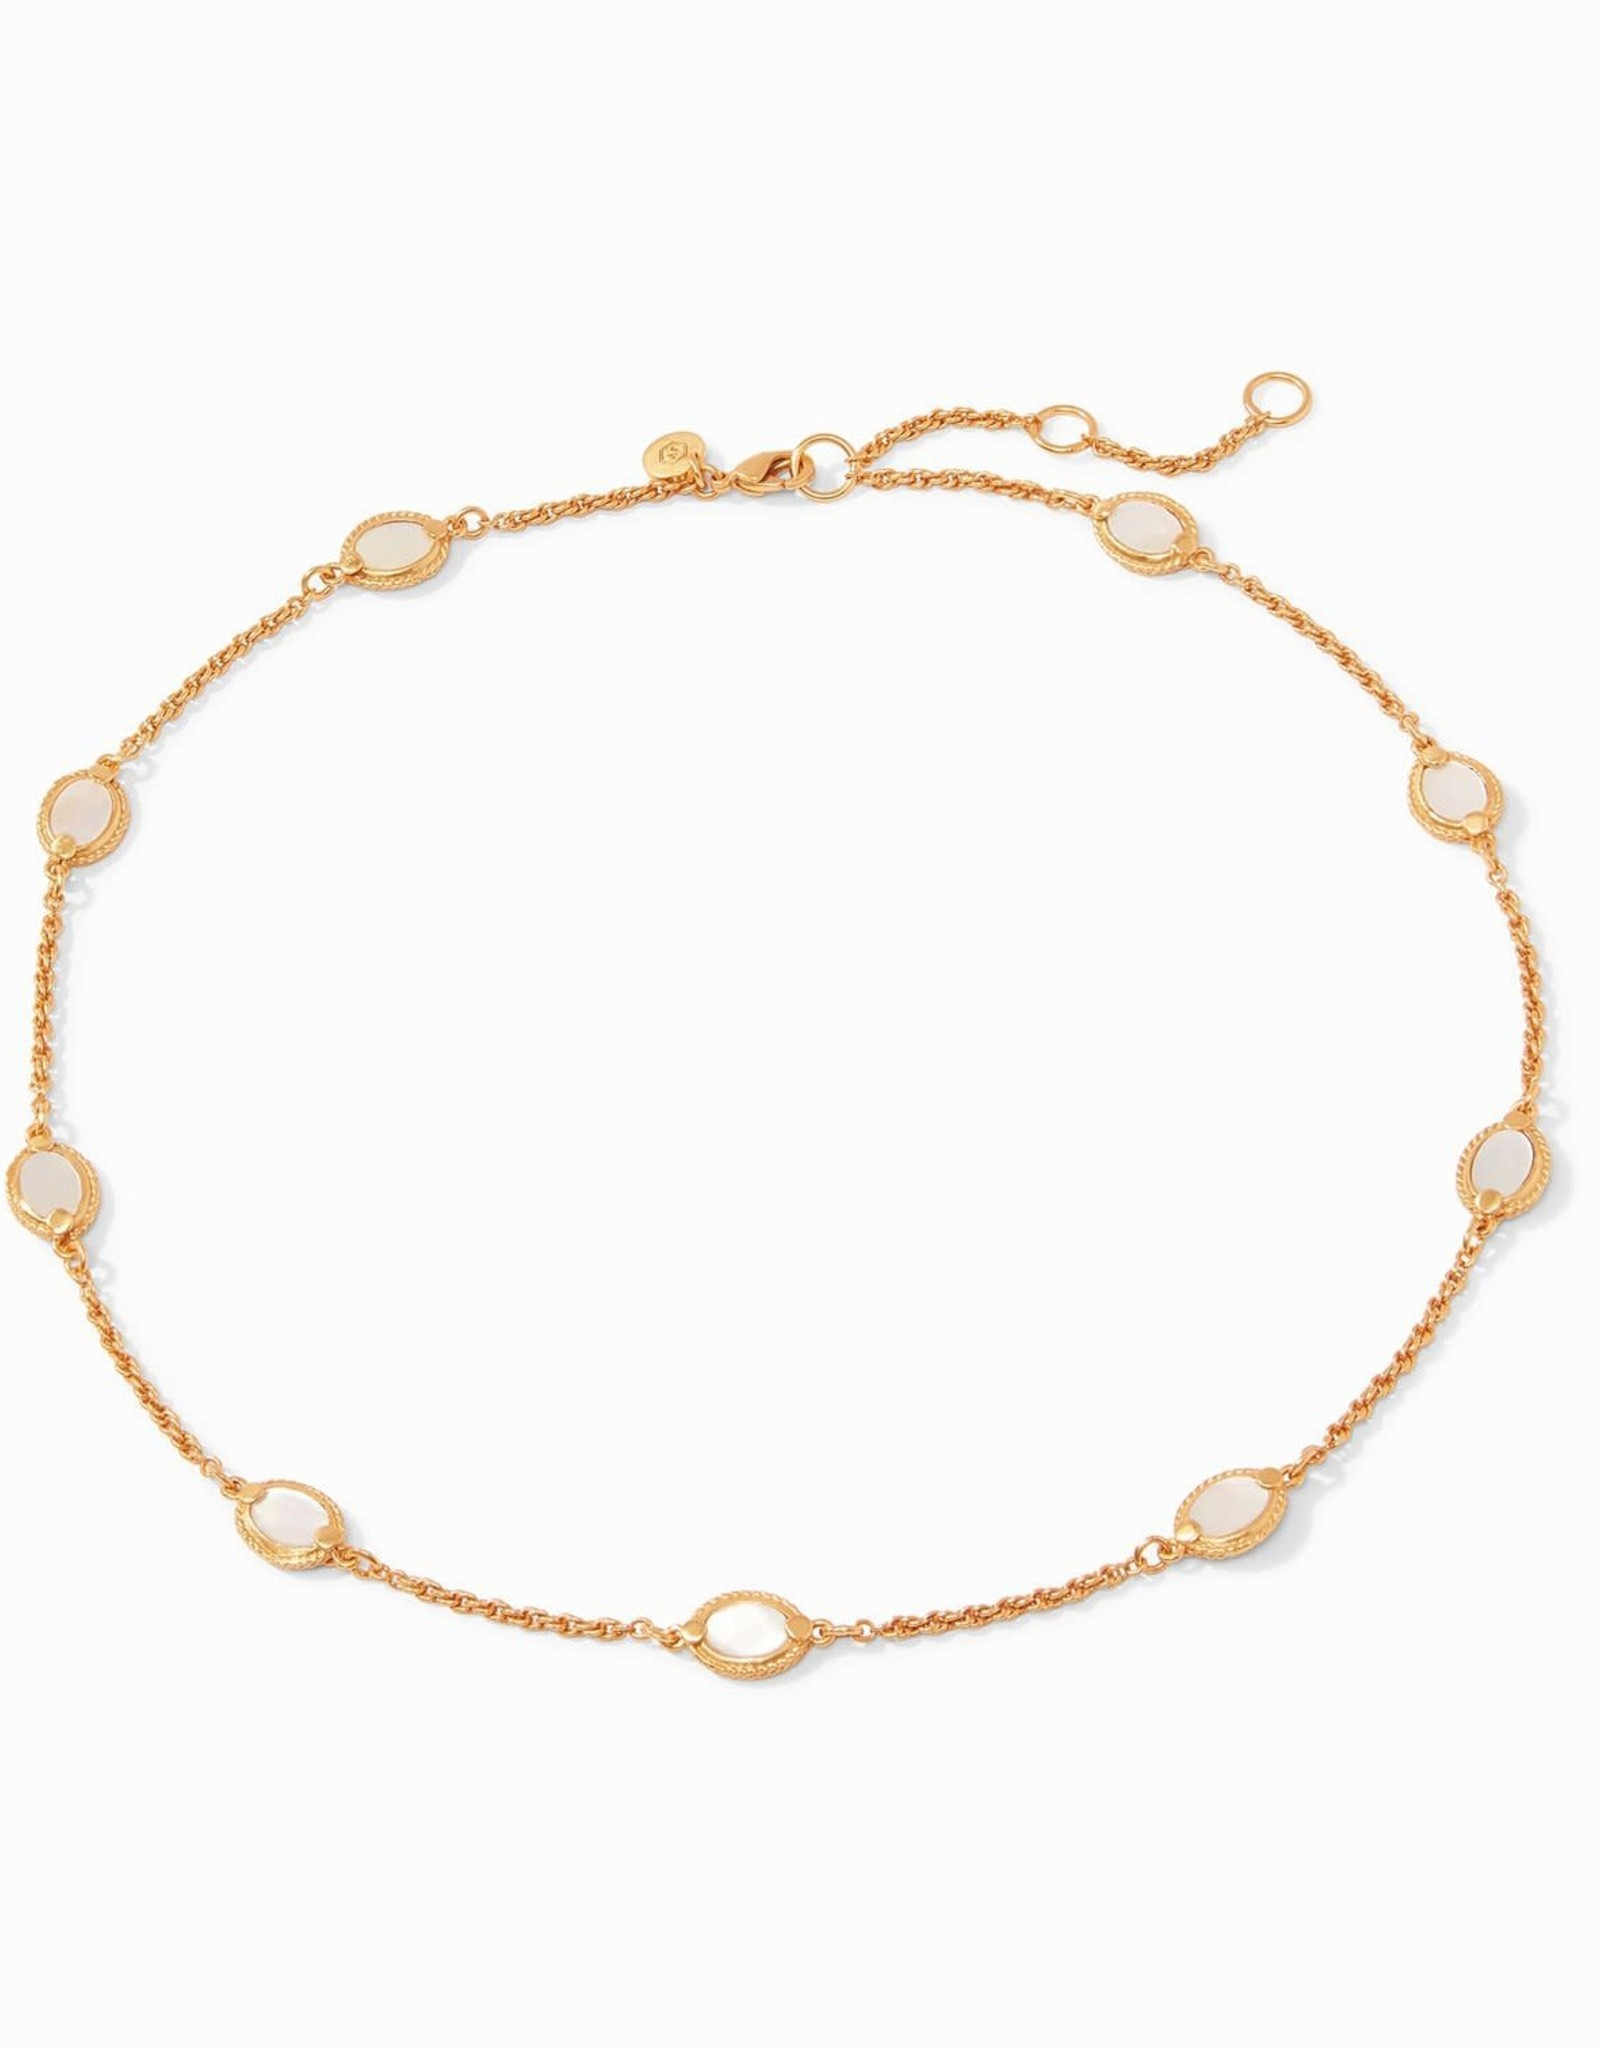 Julie Vos Calypso Demi Delicate Station Necklace Gold Mother of Pearl